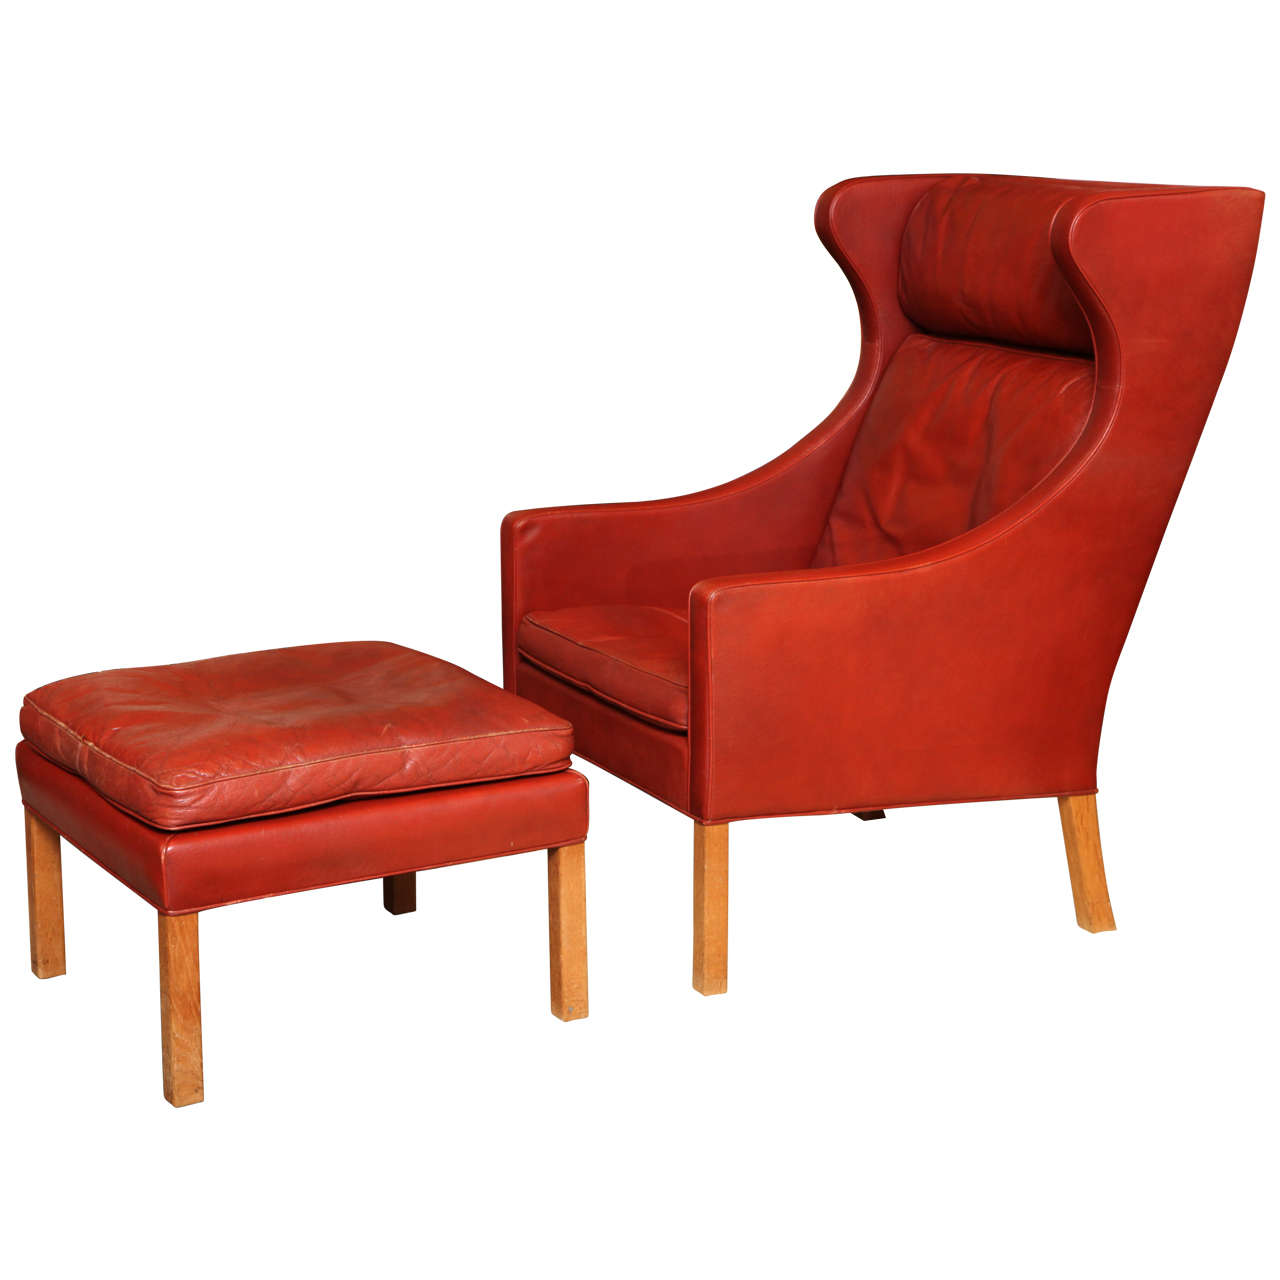 Iconic borge mogensen wingback chair and ottoman at 1stdibs Iconic chair and ottoman